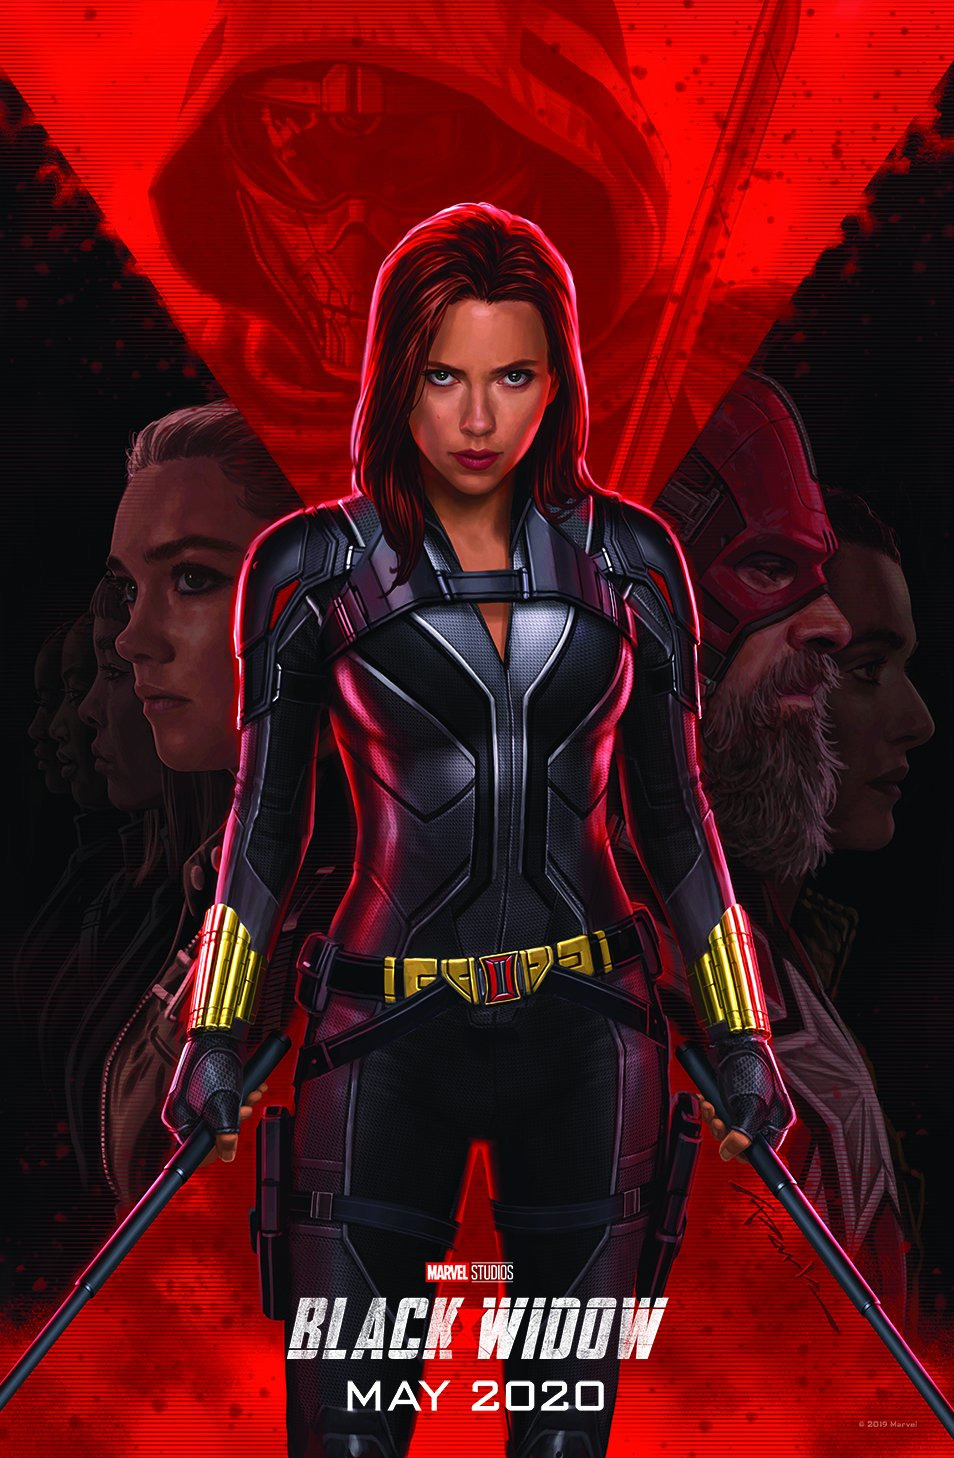 Black Widow Ne Zaman?